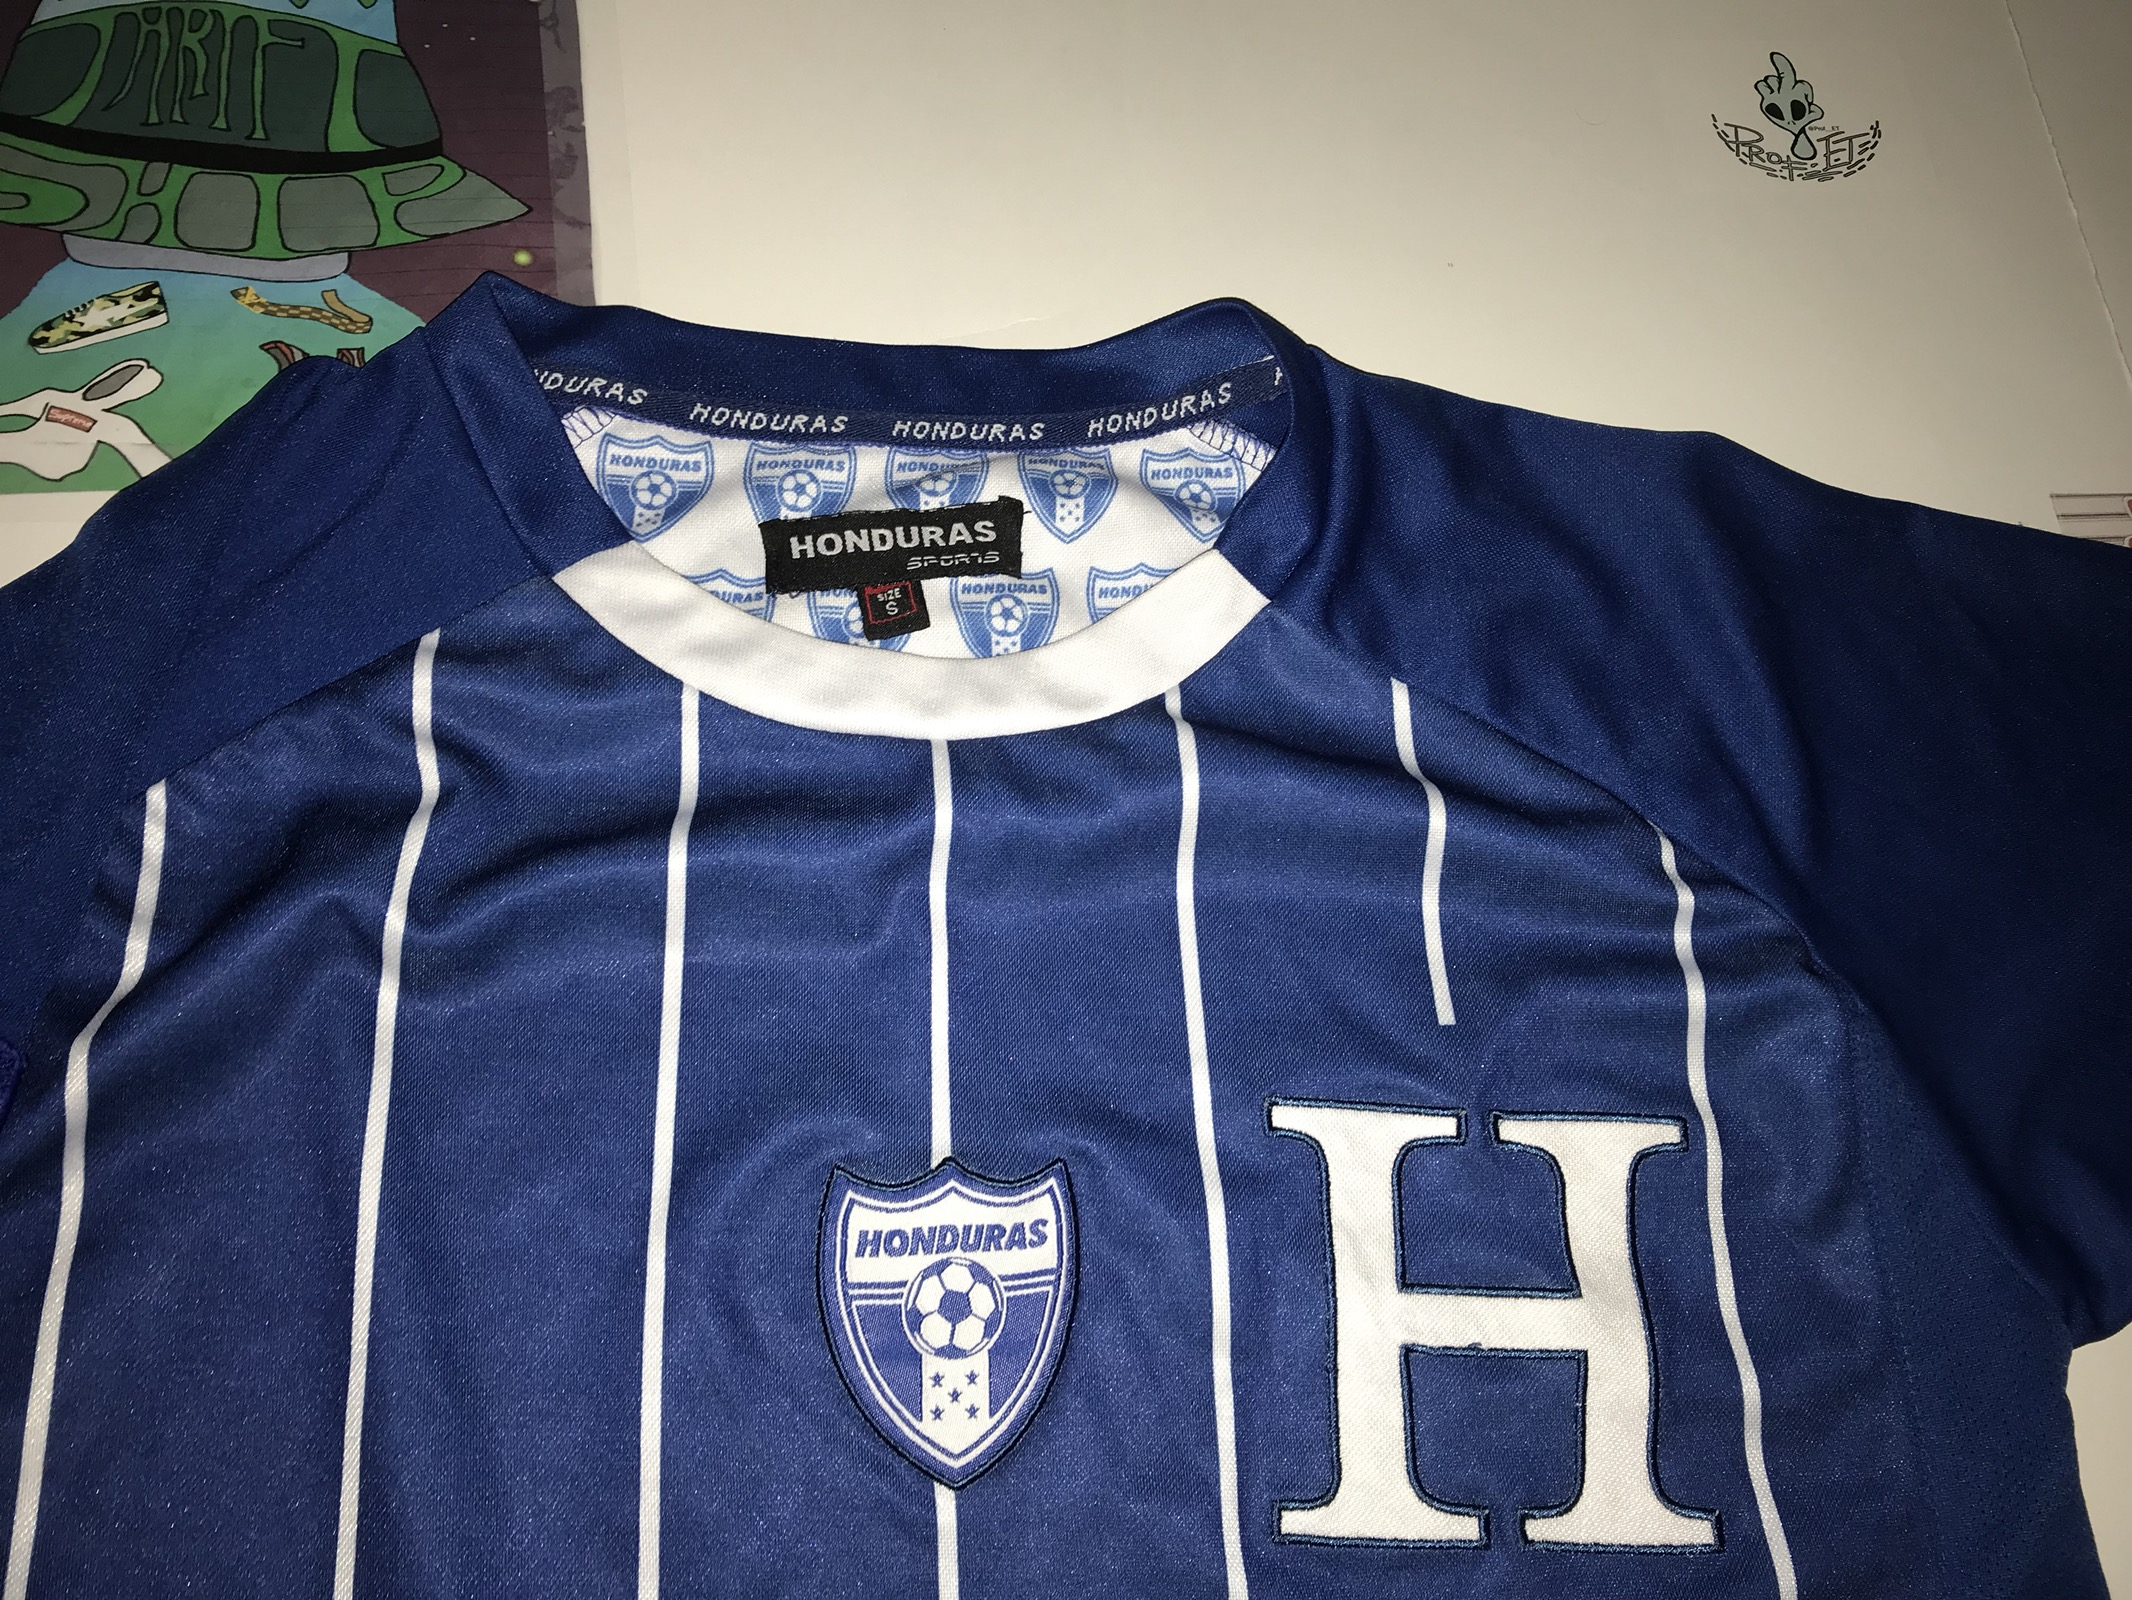 bf822badf Vintage 2010 FIFA WORLD CUP Jersey Honduras Size s - Jerseys for ...